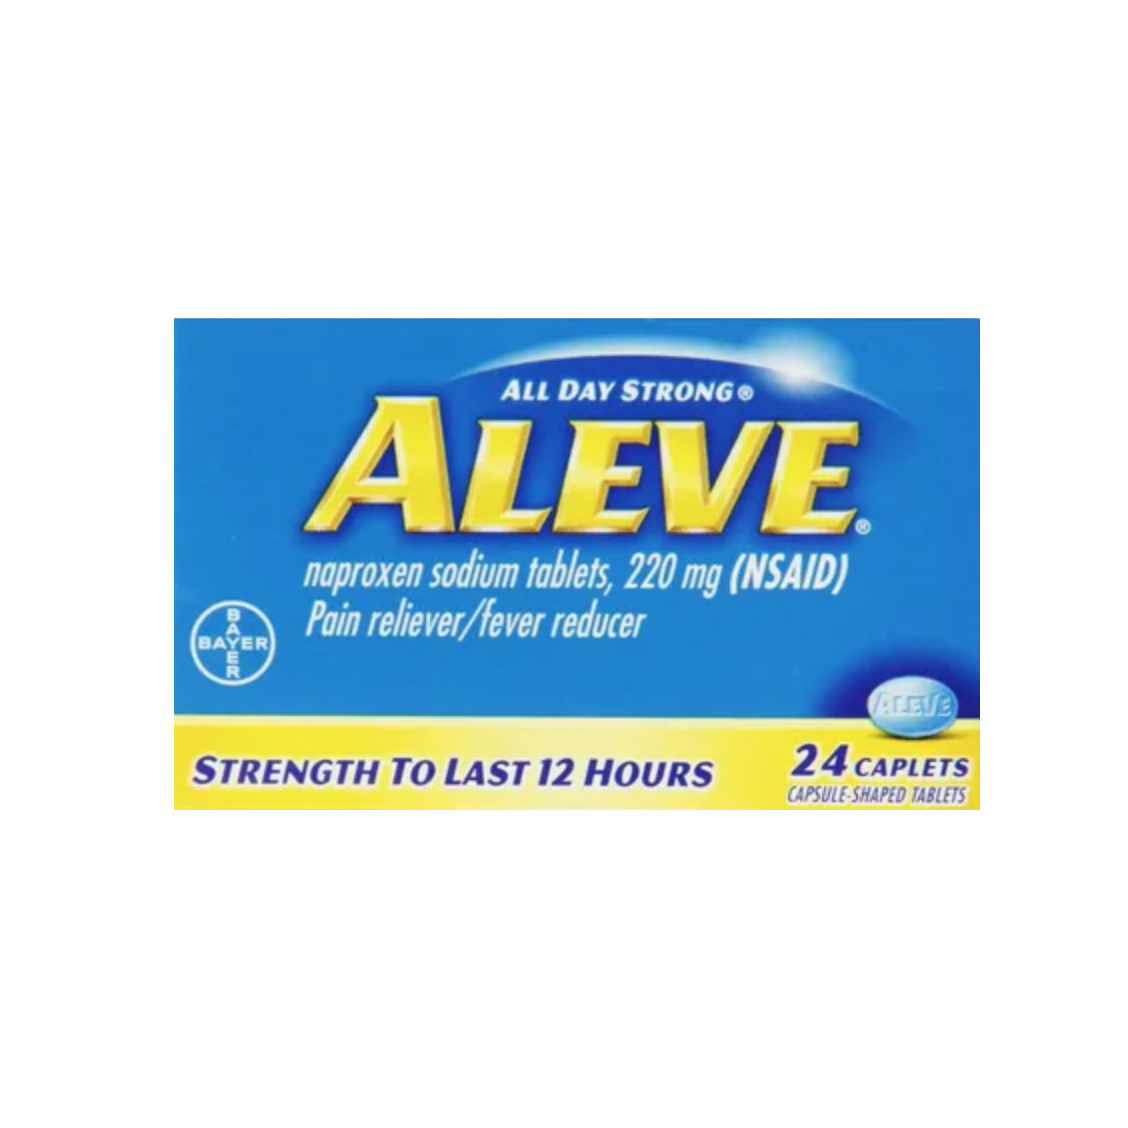 Image For Aleve, 220mg